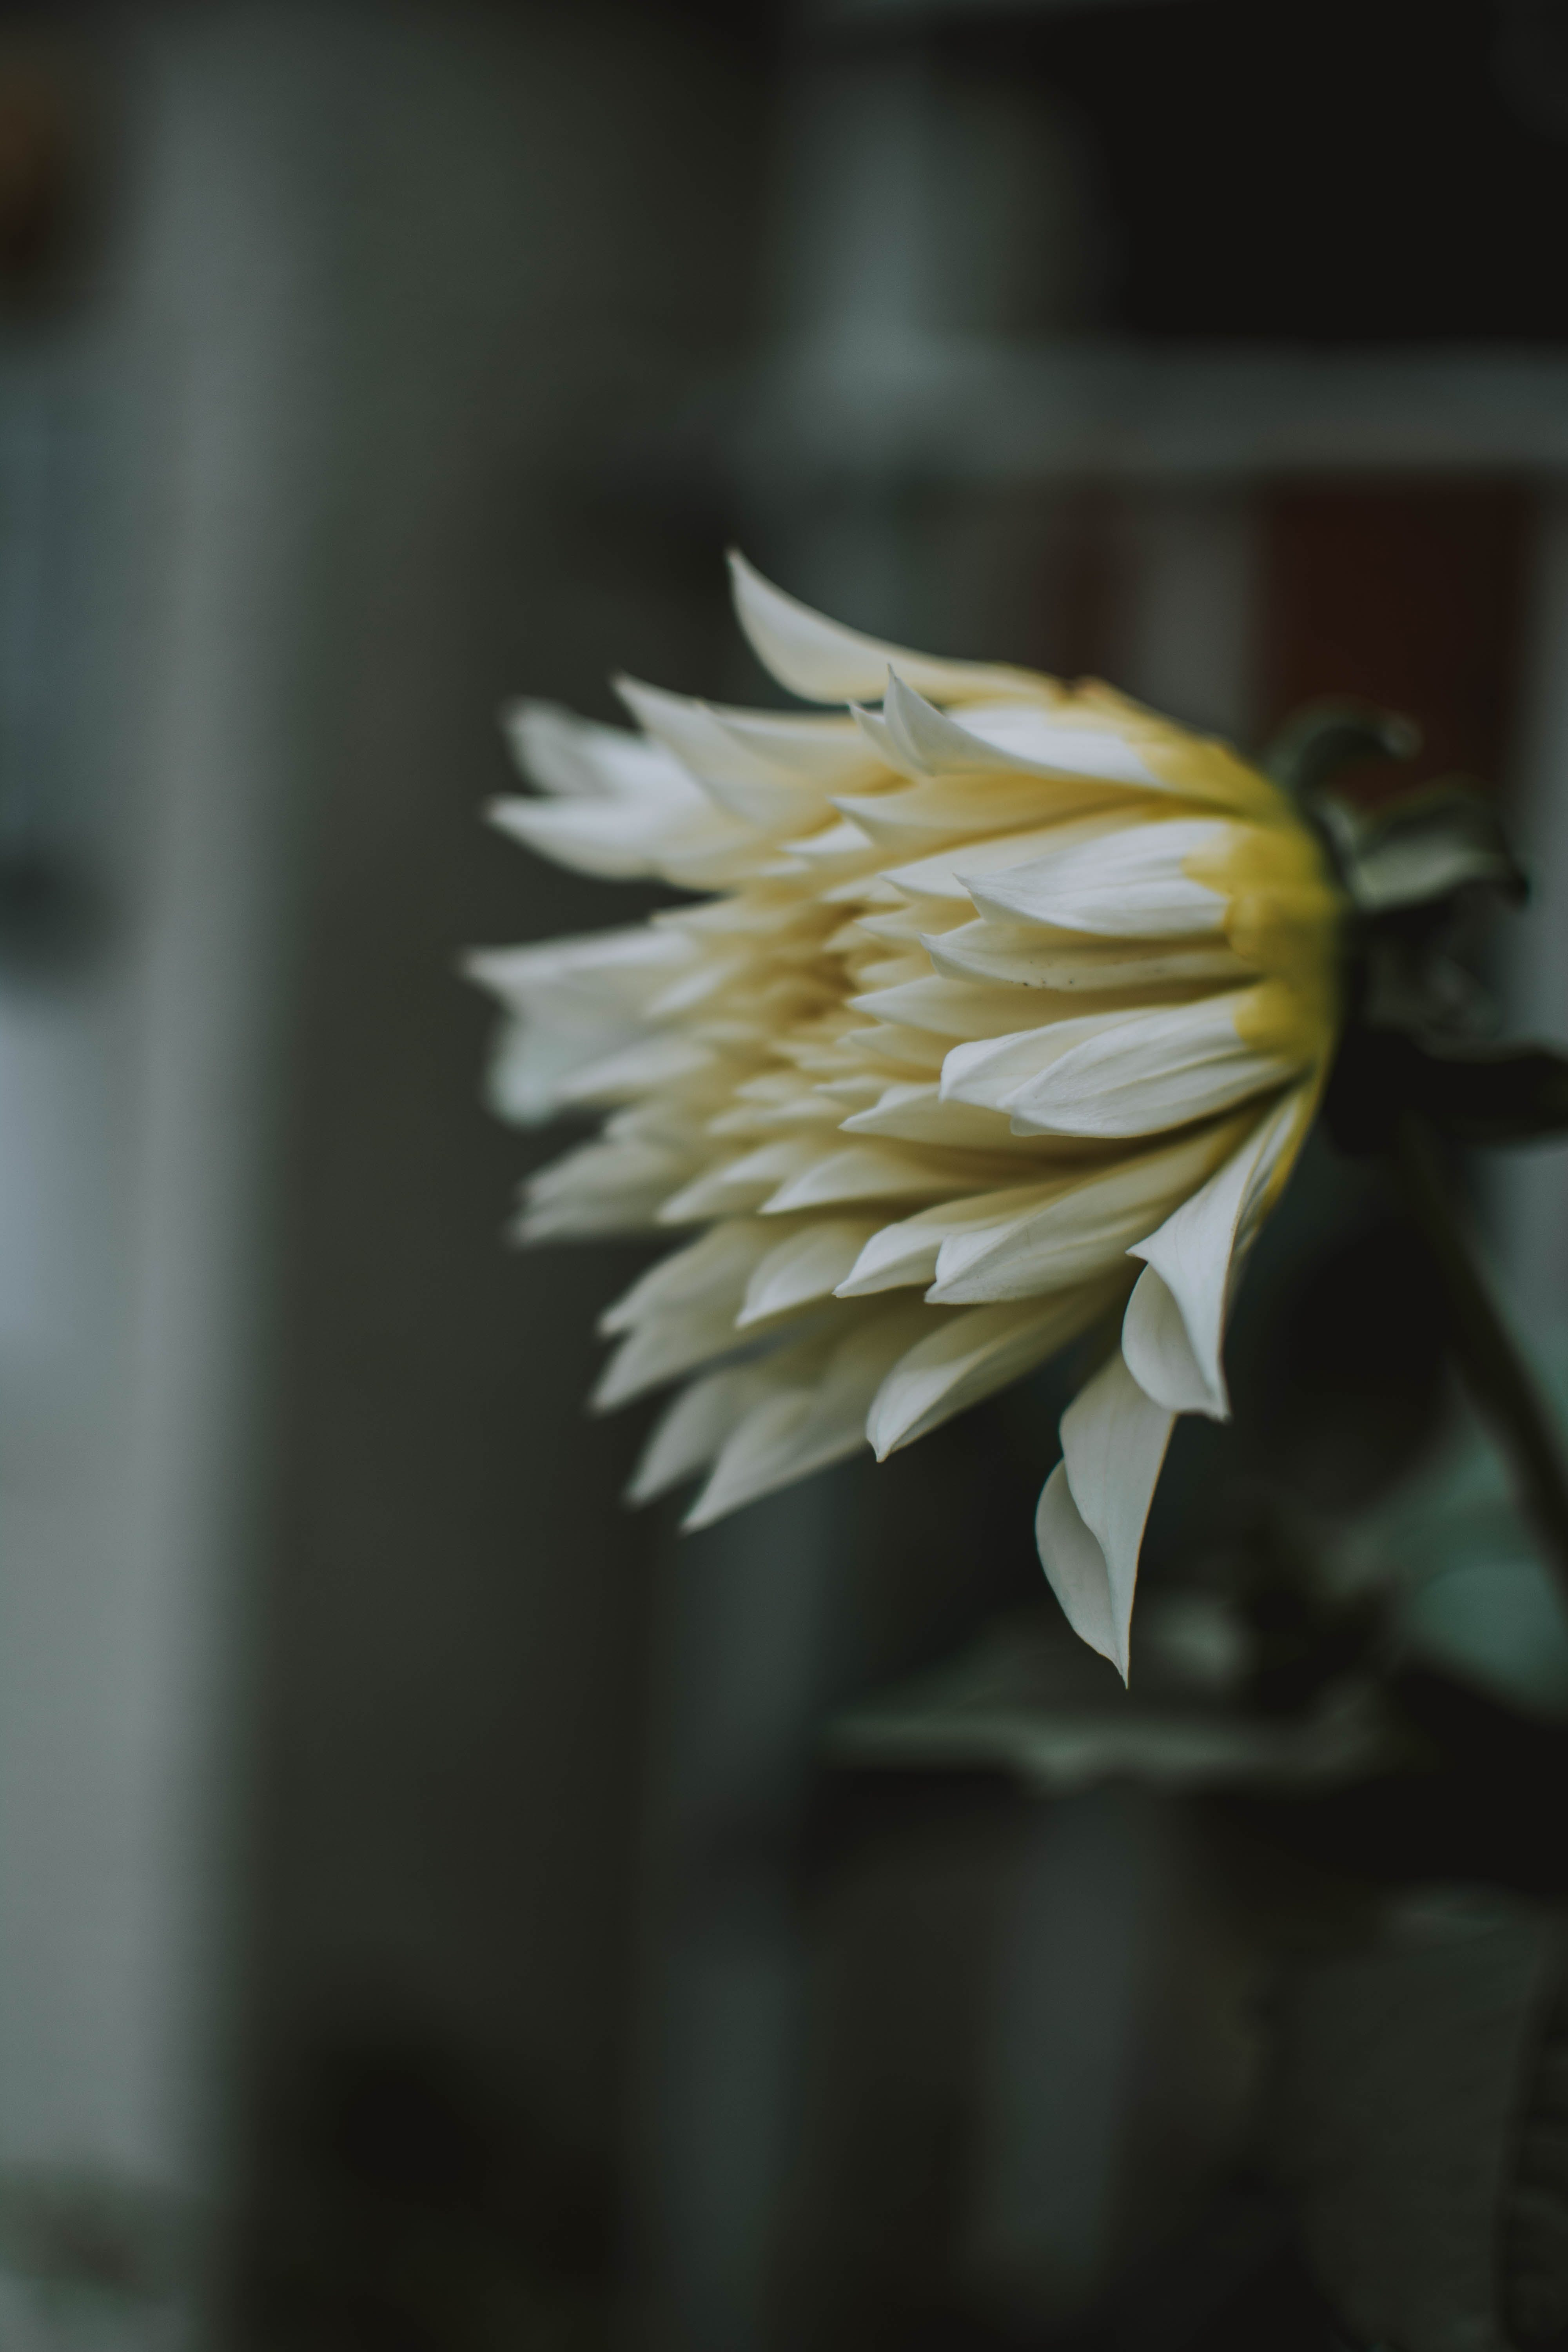 Selective Focus Photography of White Chrysanthemum Flower